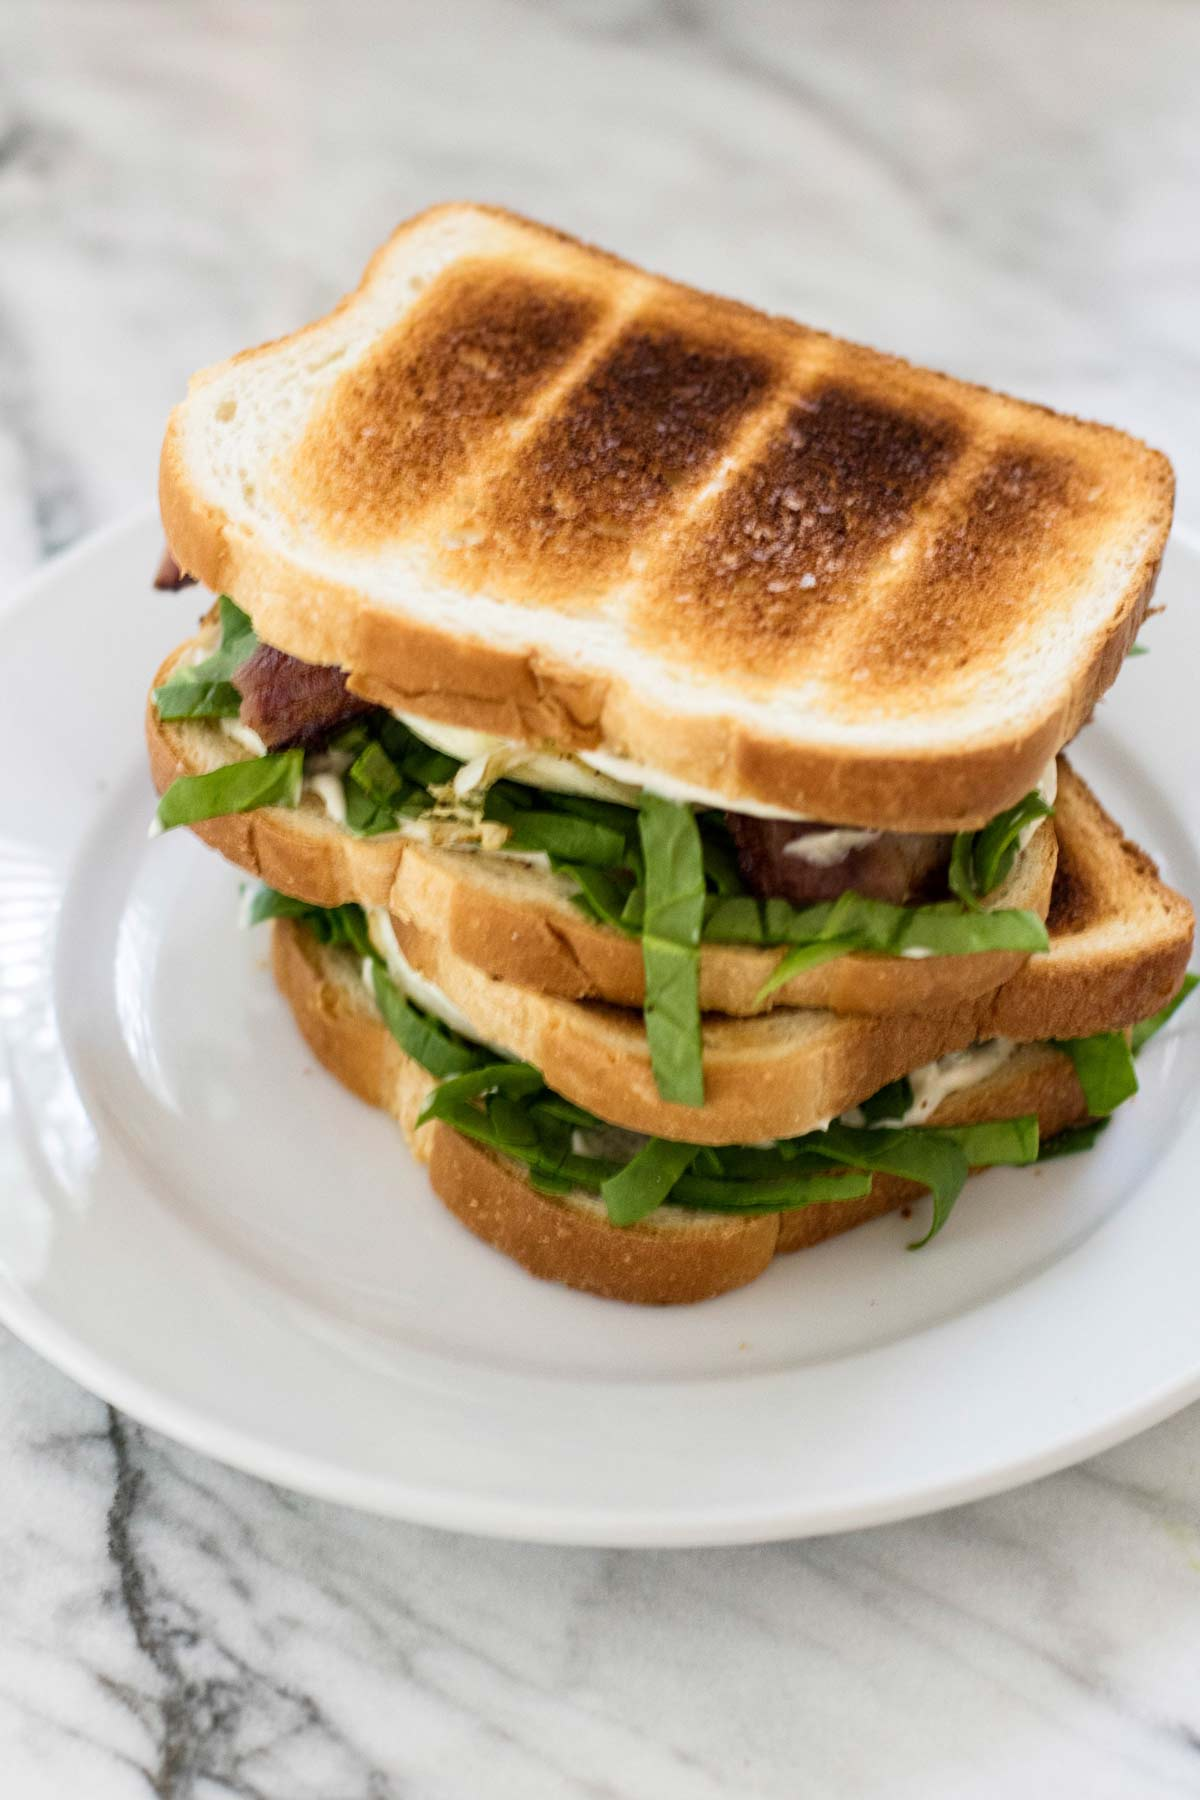 two sandwiches stacked on top of each other